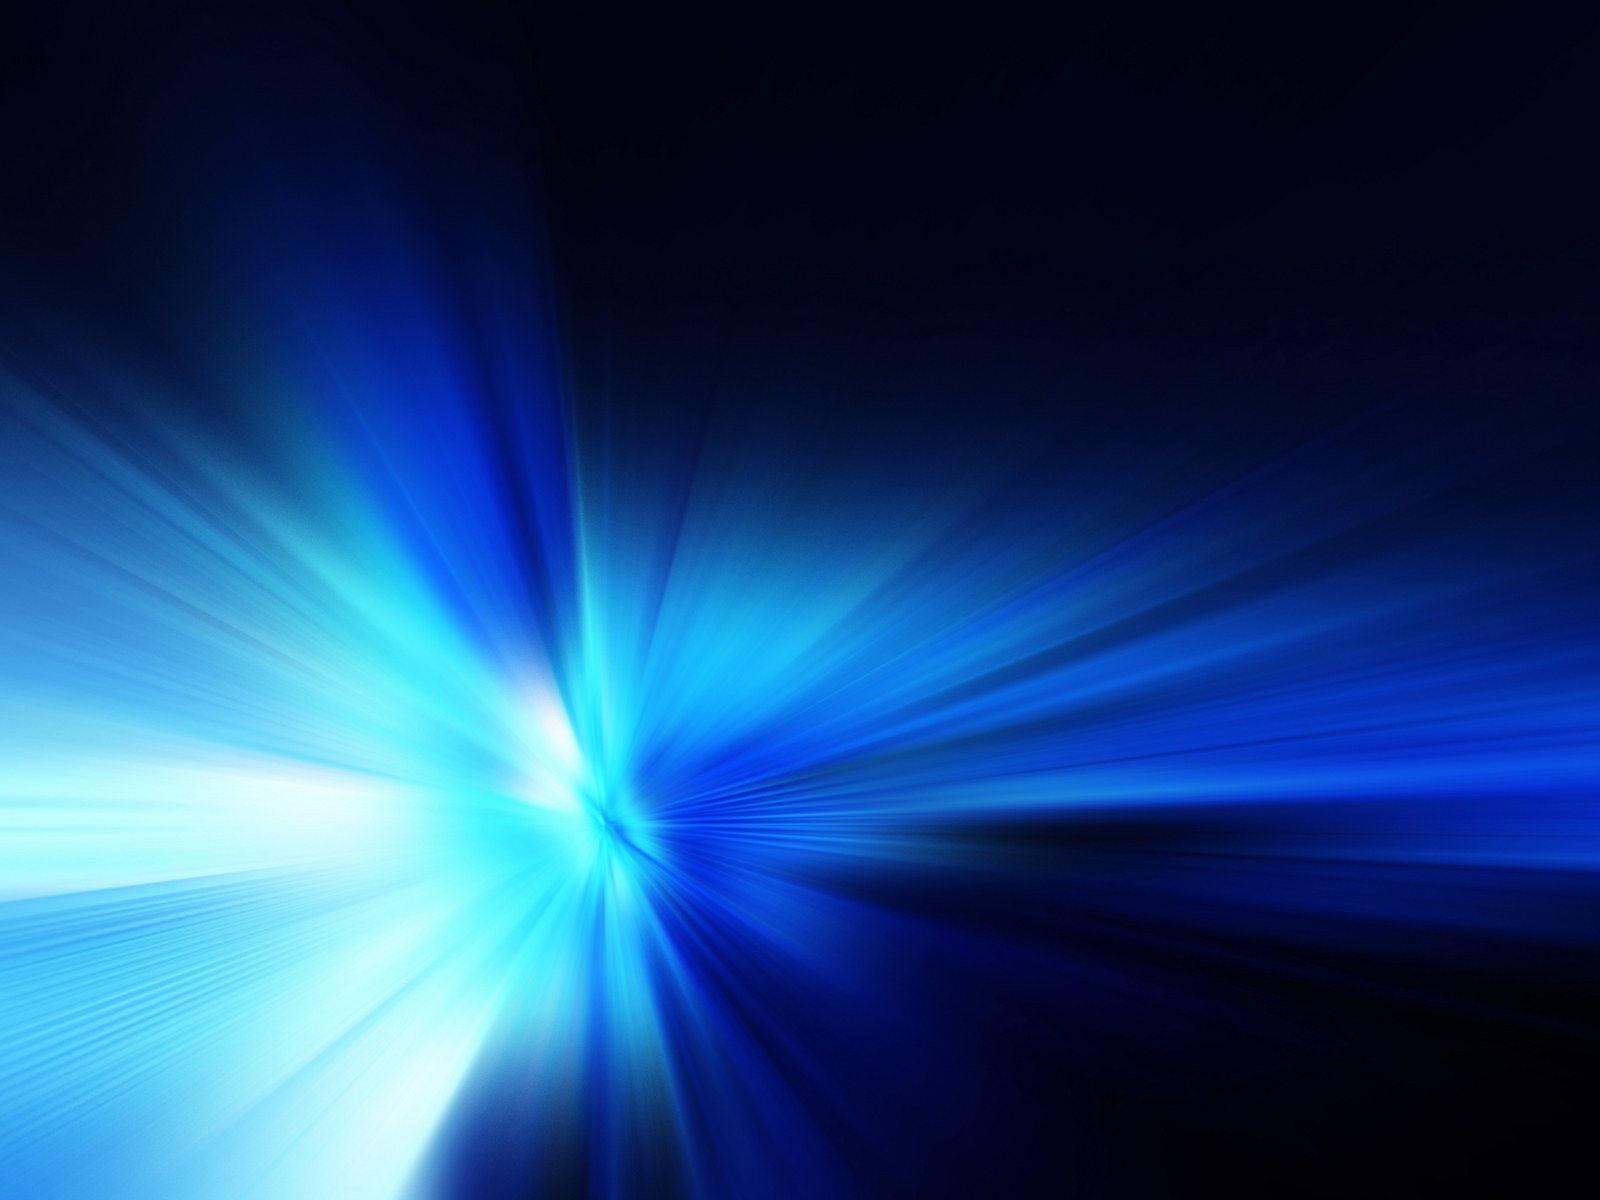 3d Light Effects Ppt Background: HD Abstract Blue Background